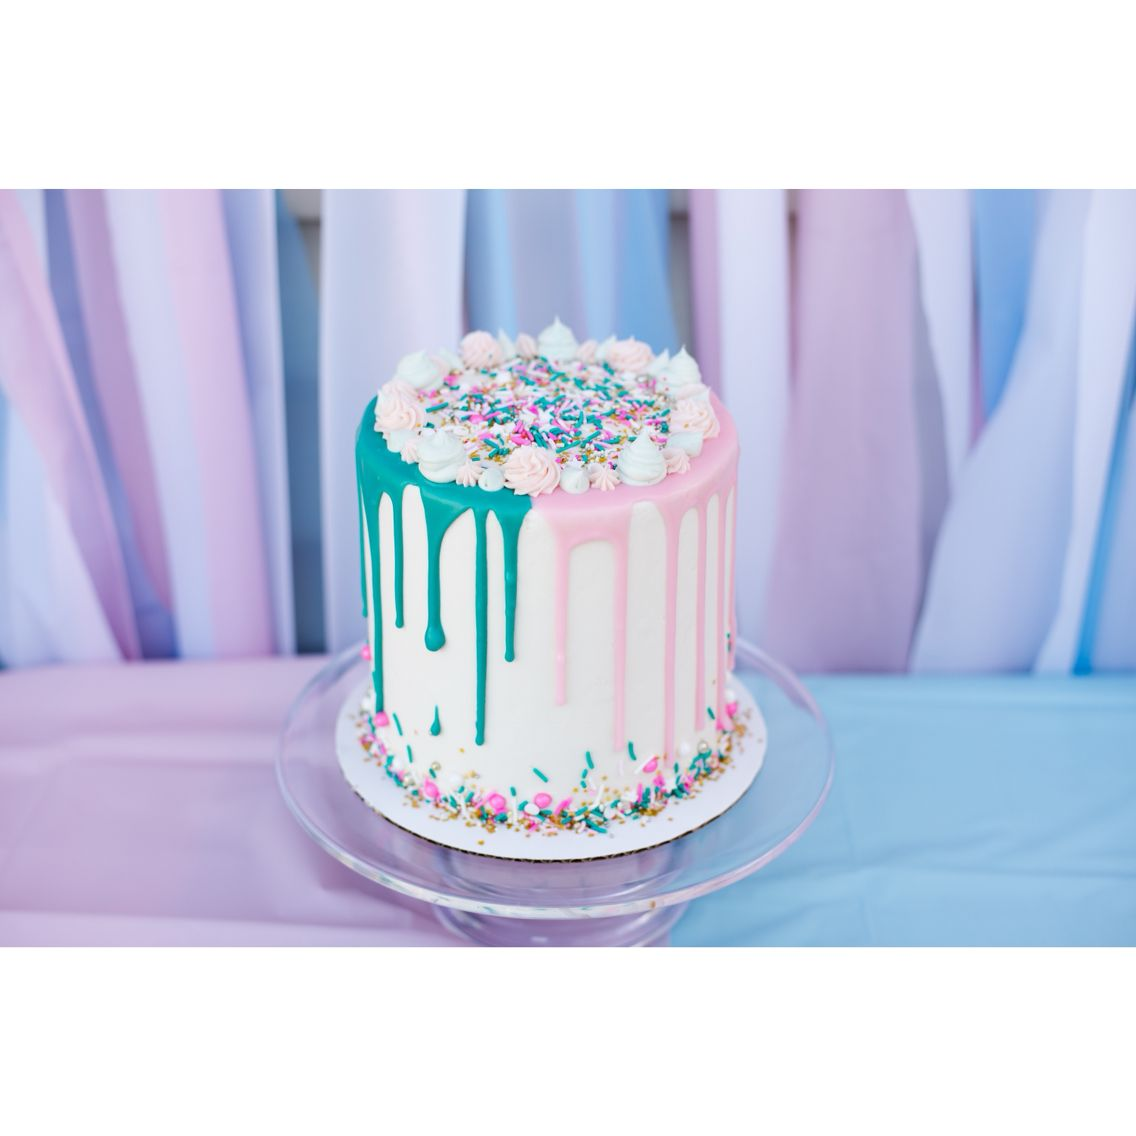 Gender Reveal Party Food And Baby Shower Drinks Ideas Baby Reveal Cakes Gender Reveal Cake Gender Reveal Party Food